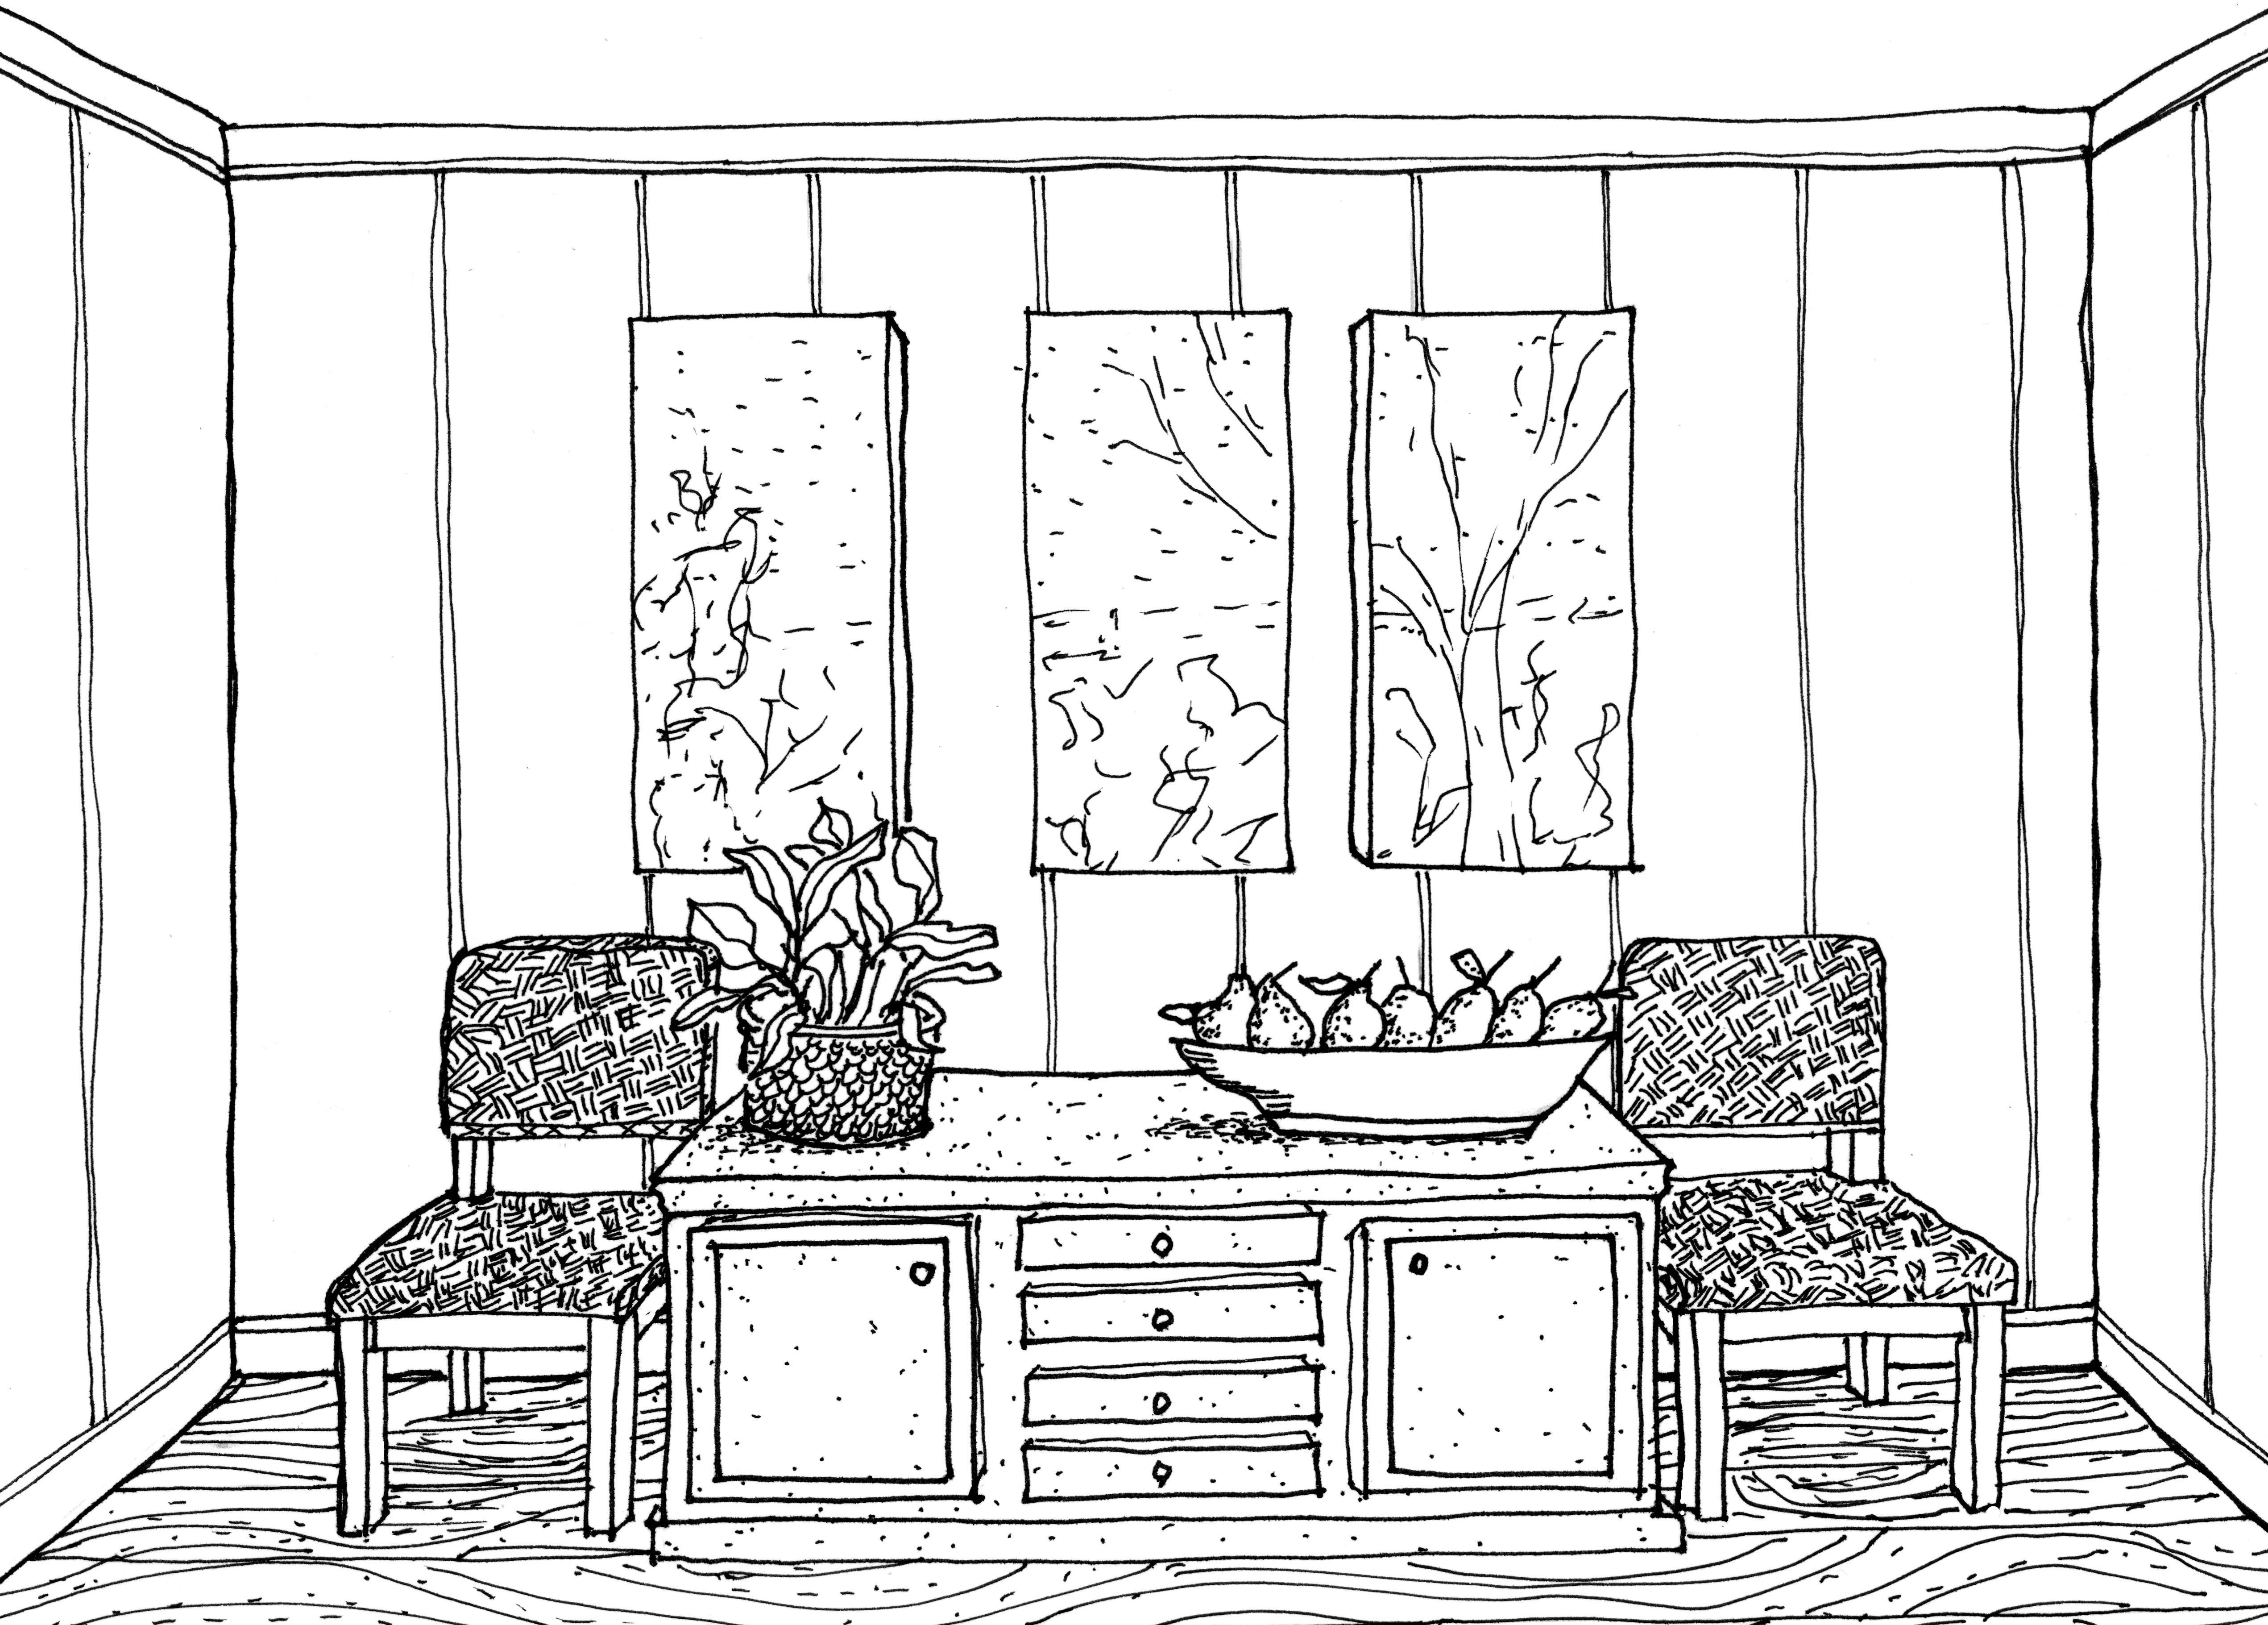 Drawn office one point perspective Interior design interior drawing design